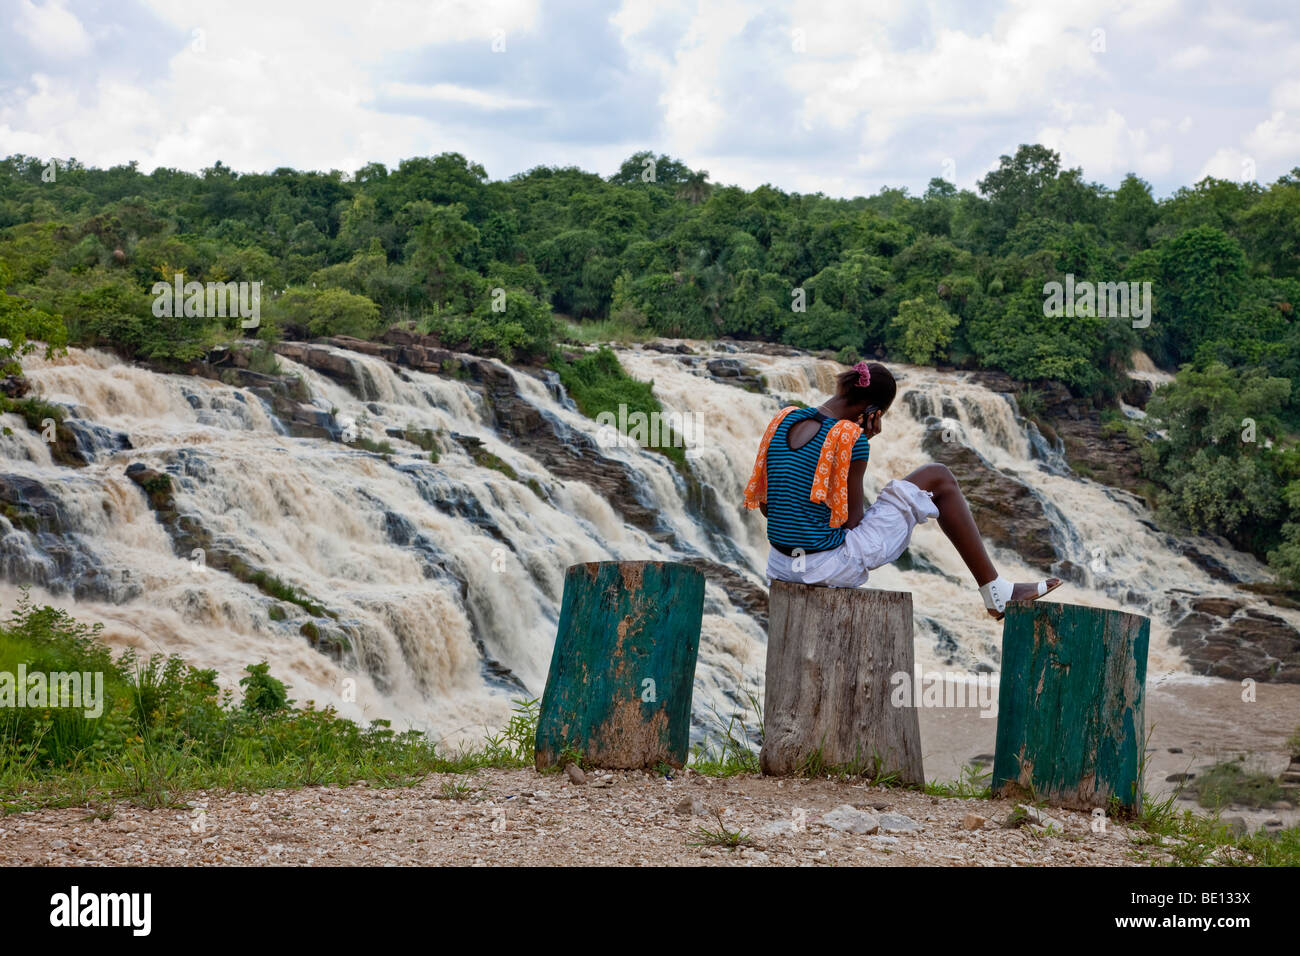 A woman chats on her cell phone while looking over the impressive Gurara Falls in Niger State, Nigeria. - Stock Image